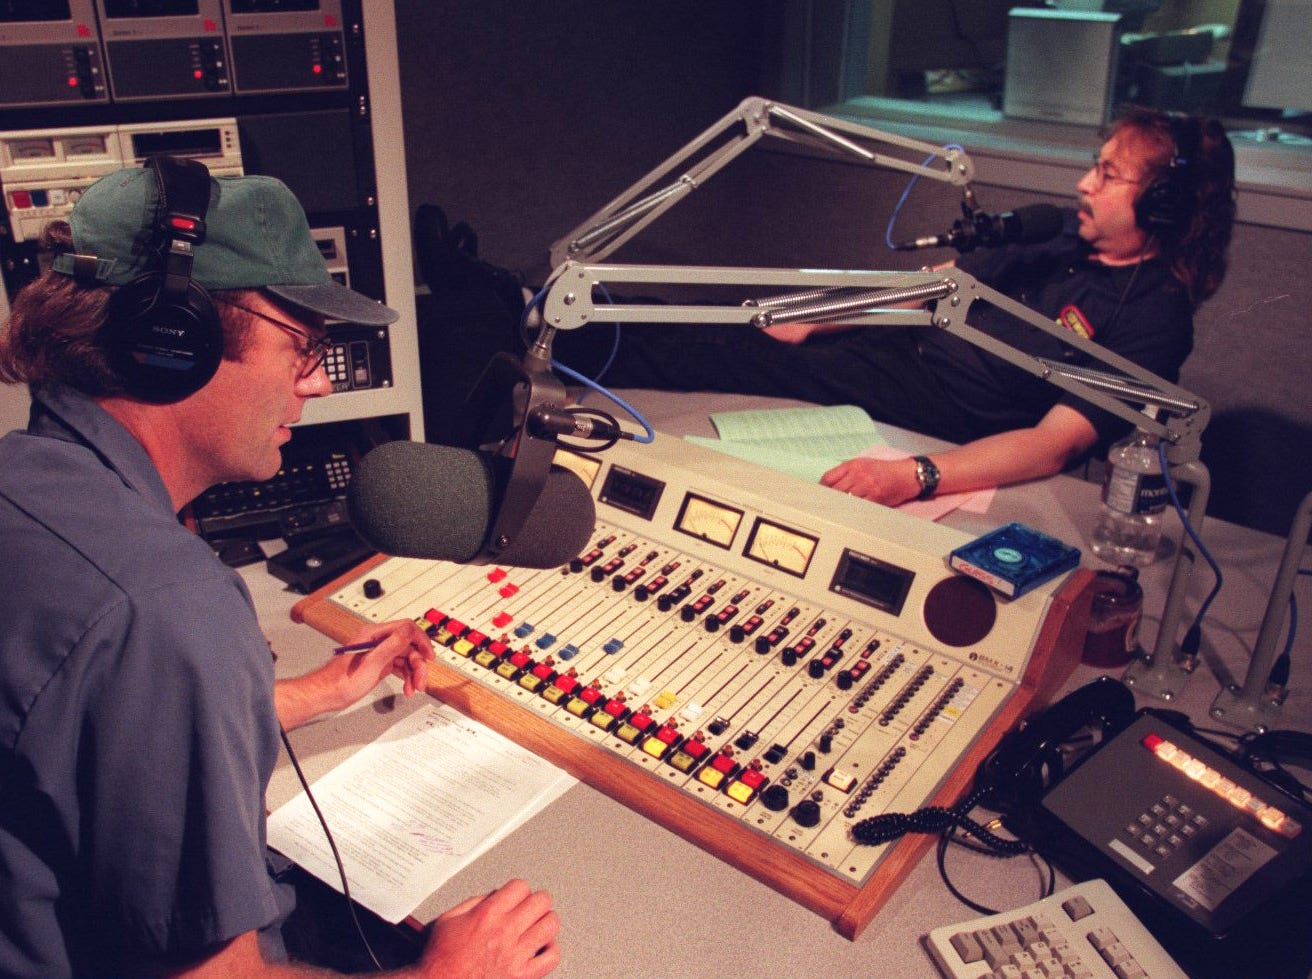 Mike Clark and Drew Lane, co-hosts of WRIF's The Drew and Mike Show, photographed in the studio in 1996.